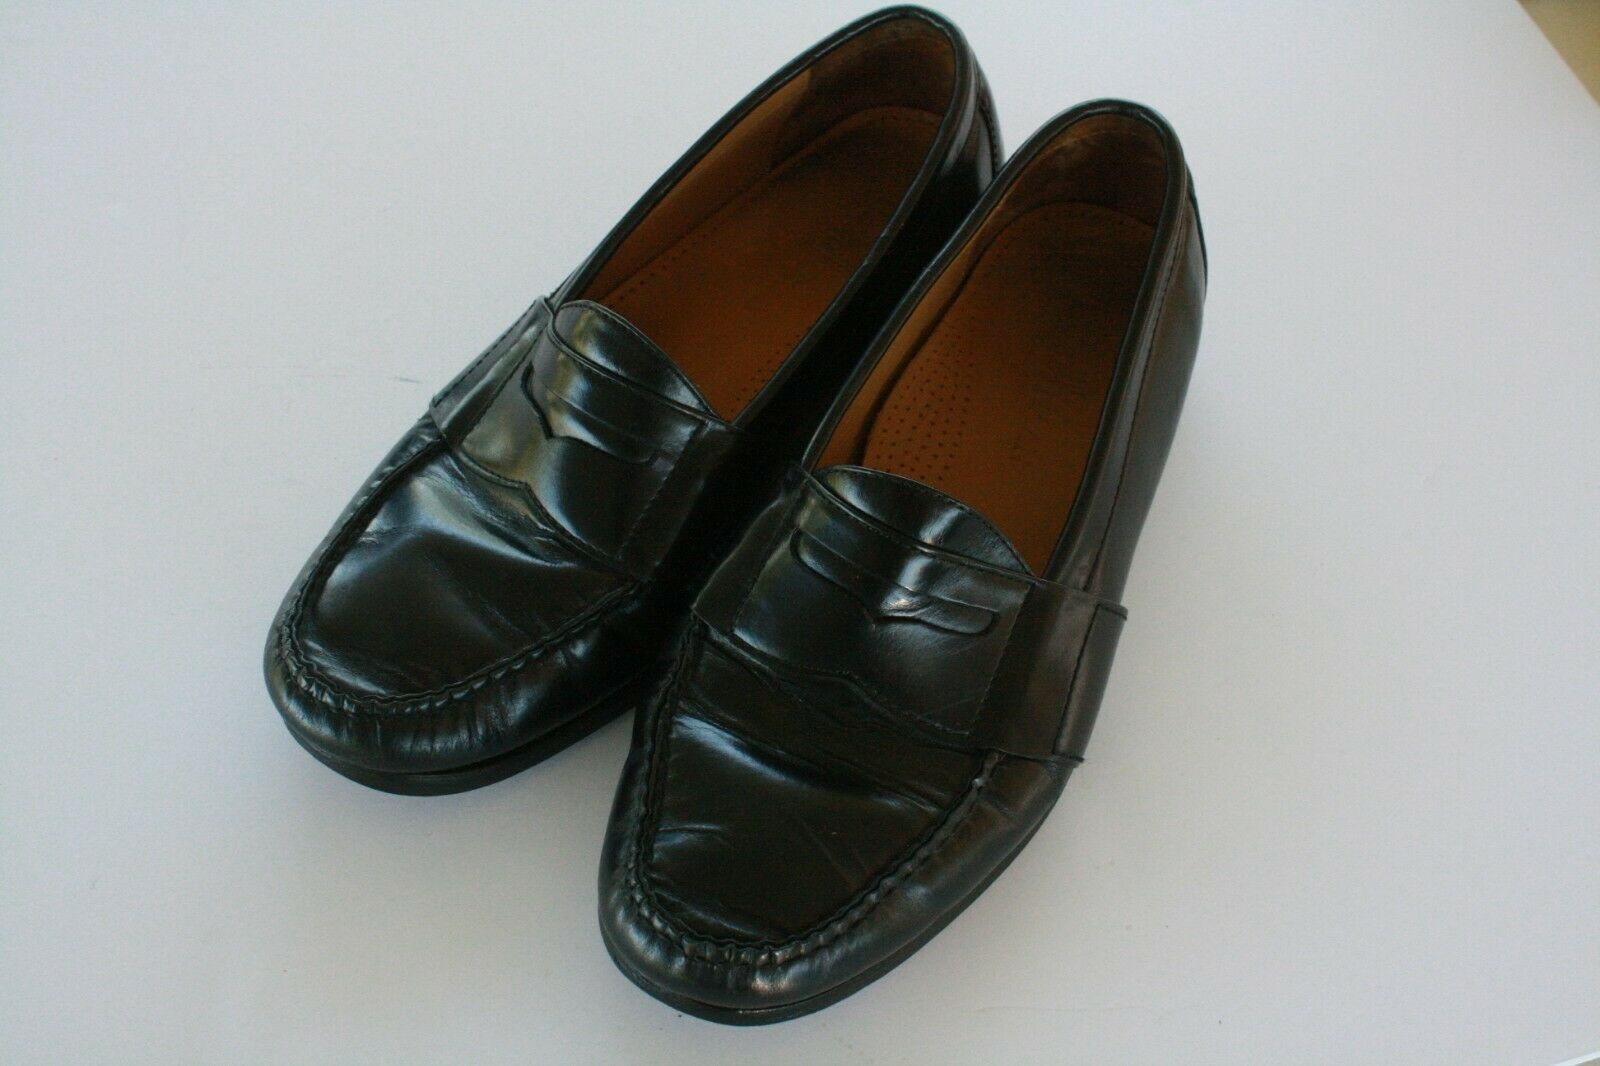 Cole Haan Men's Black Leather Slip On Casual Penny Loafers Size 8.5 M EUC